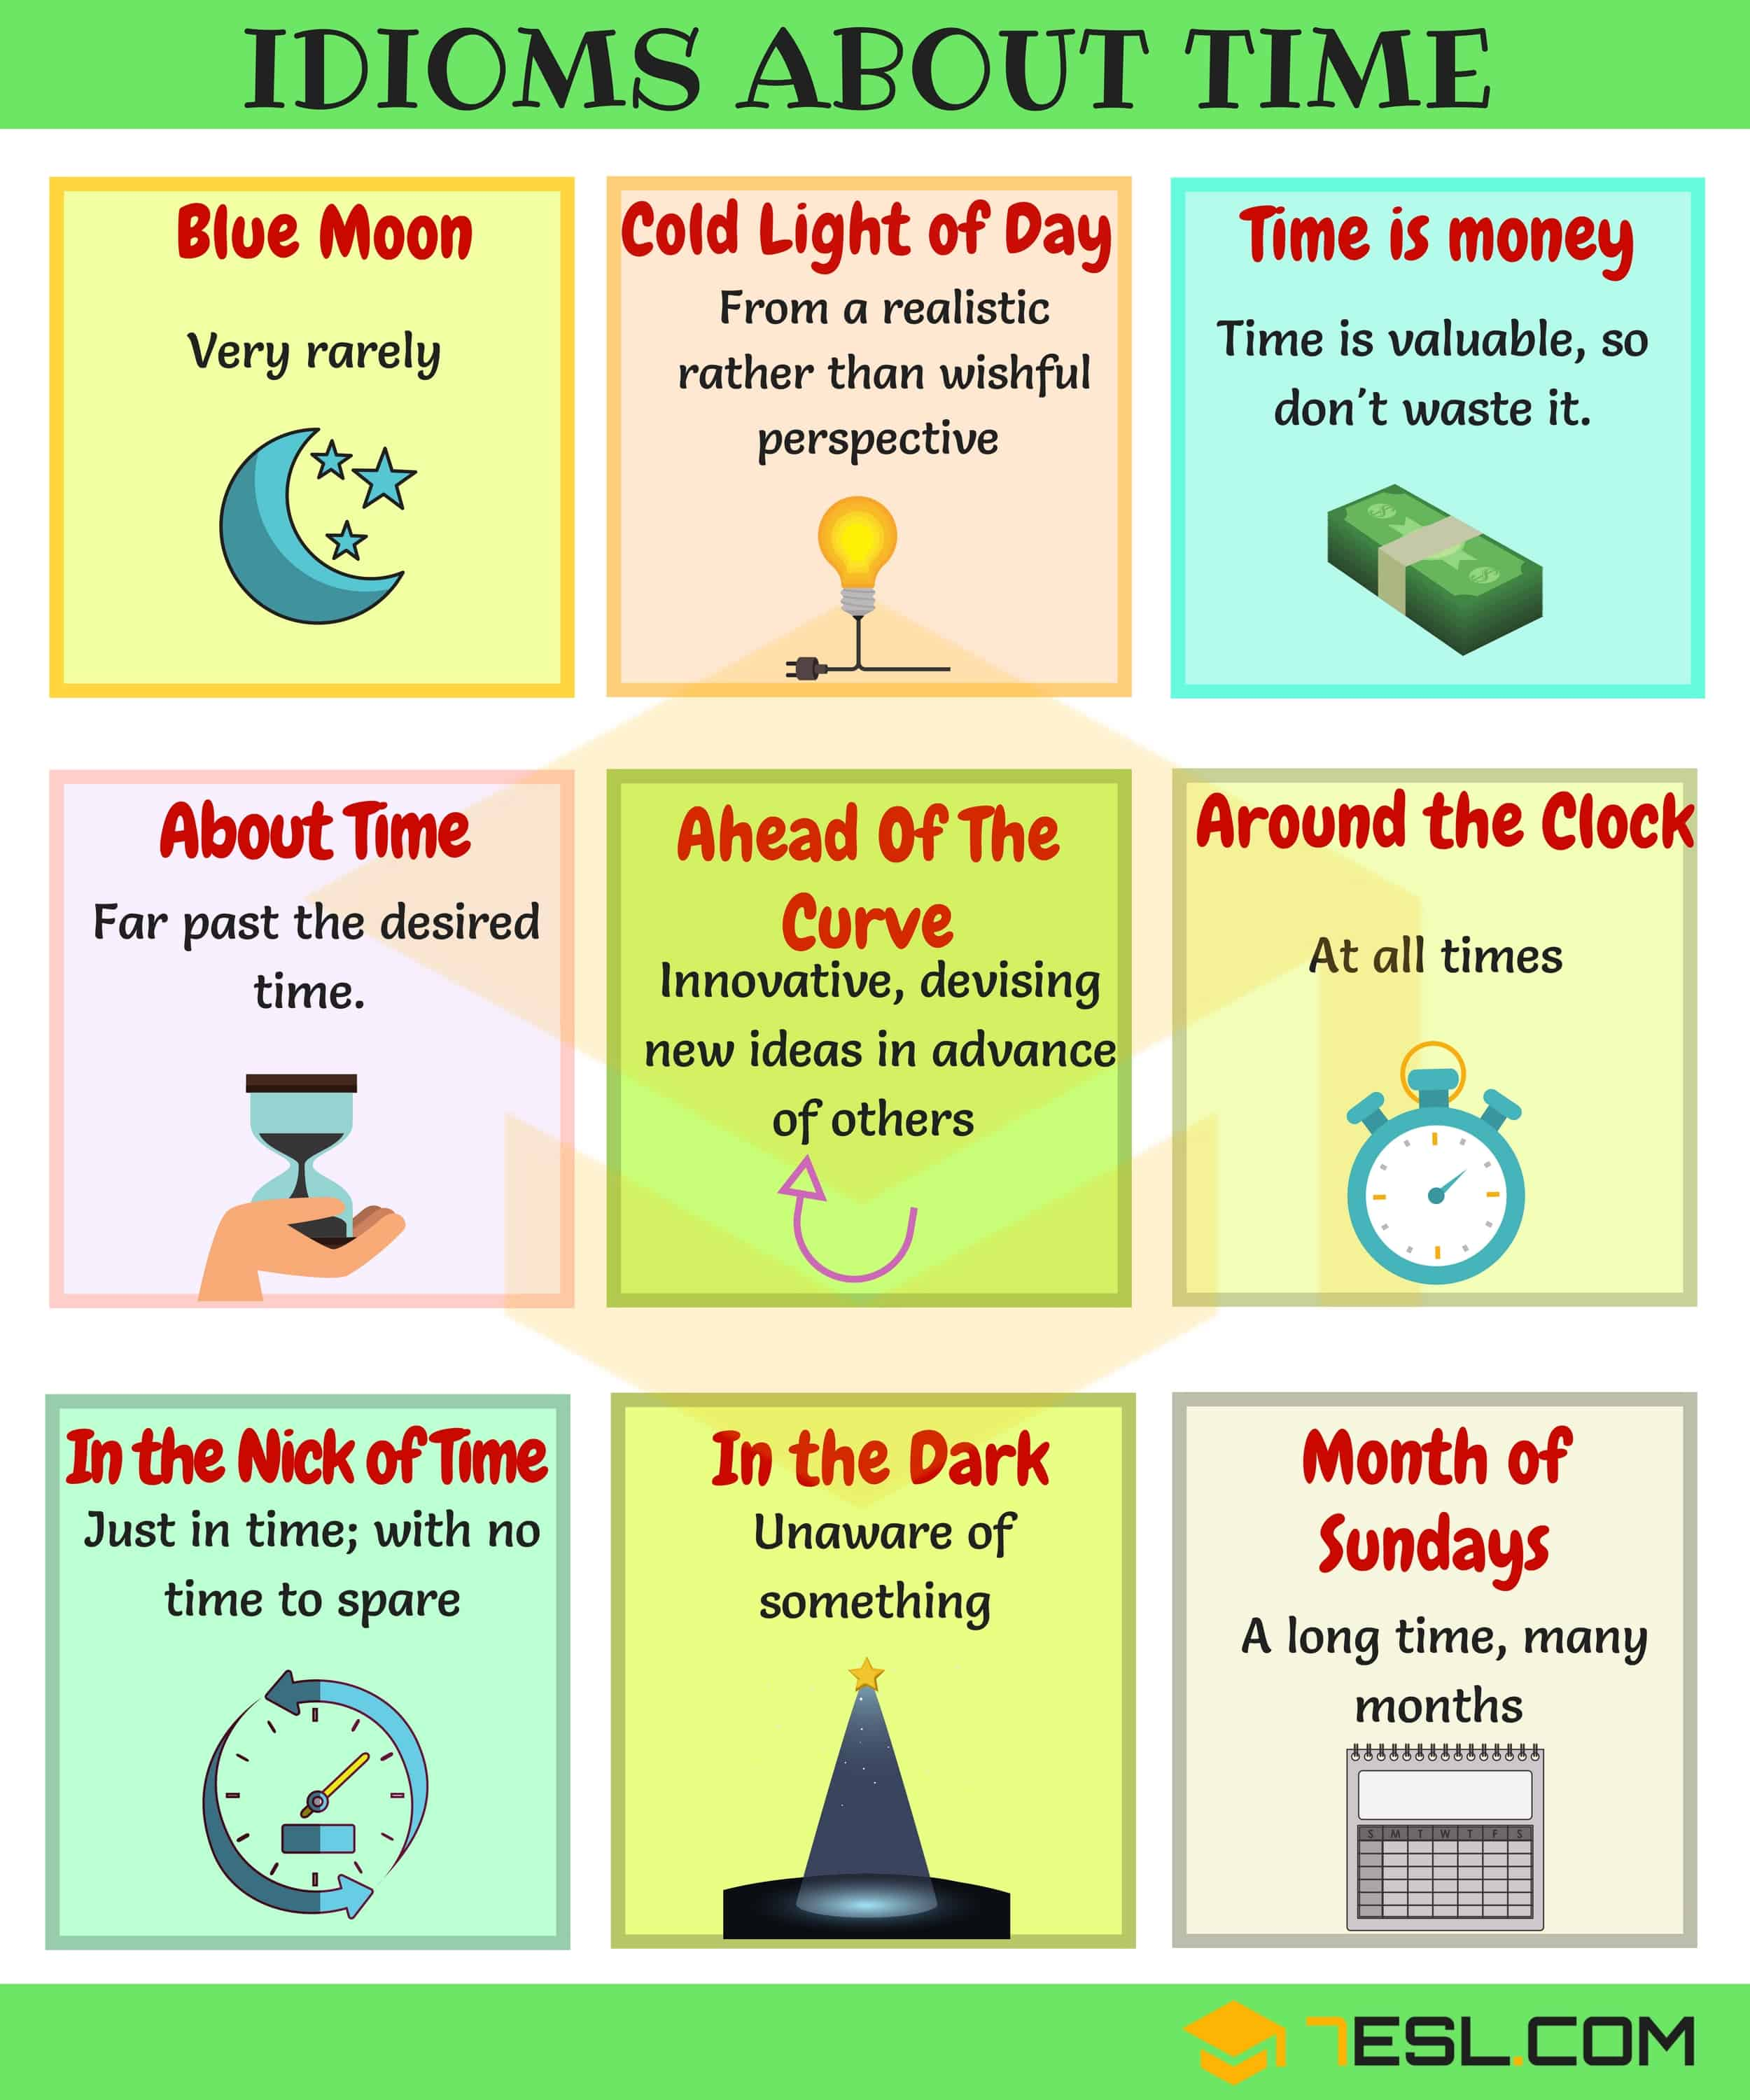 Time Idioms 40 Useful Sayings And Idioms About Time